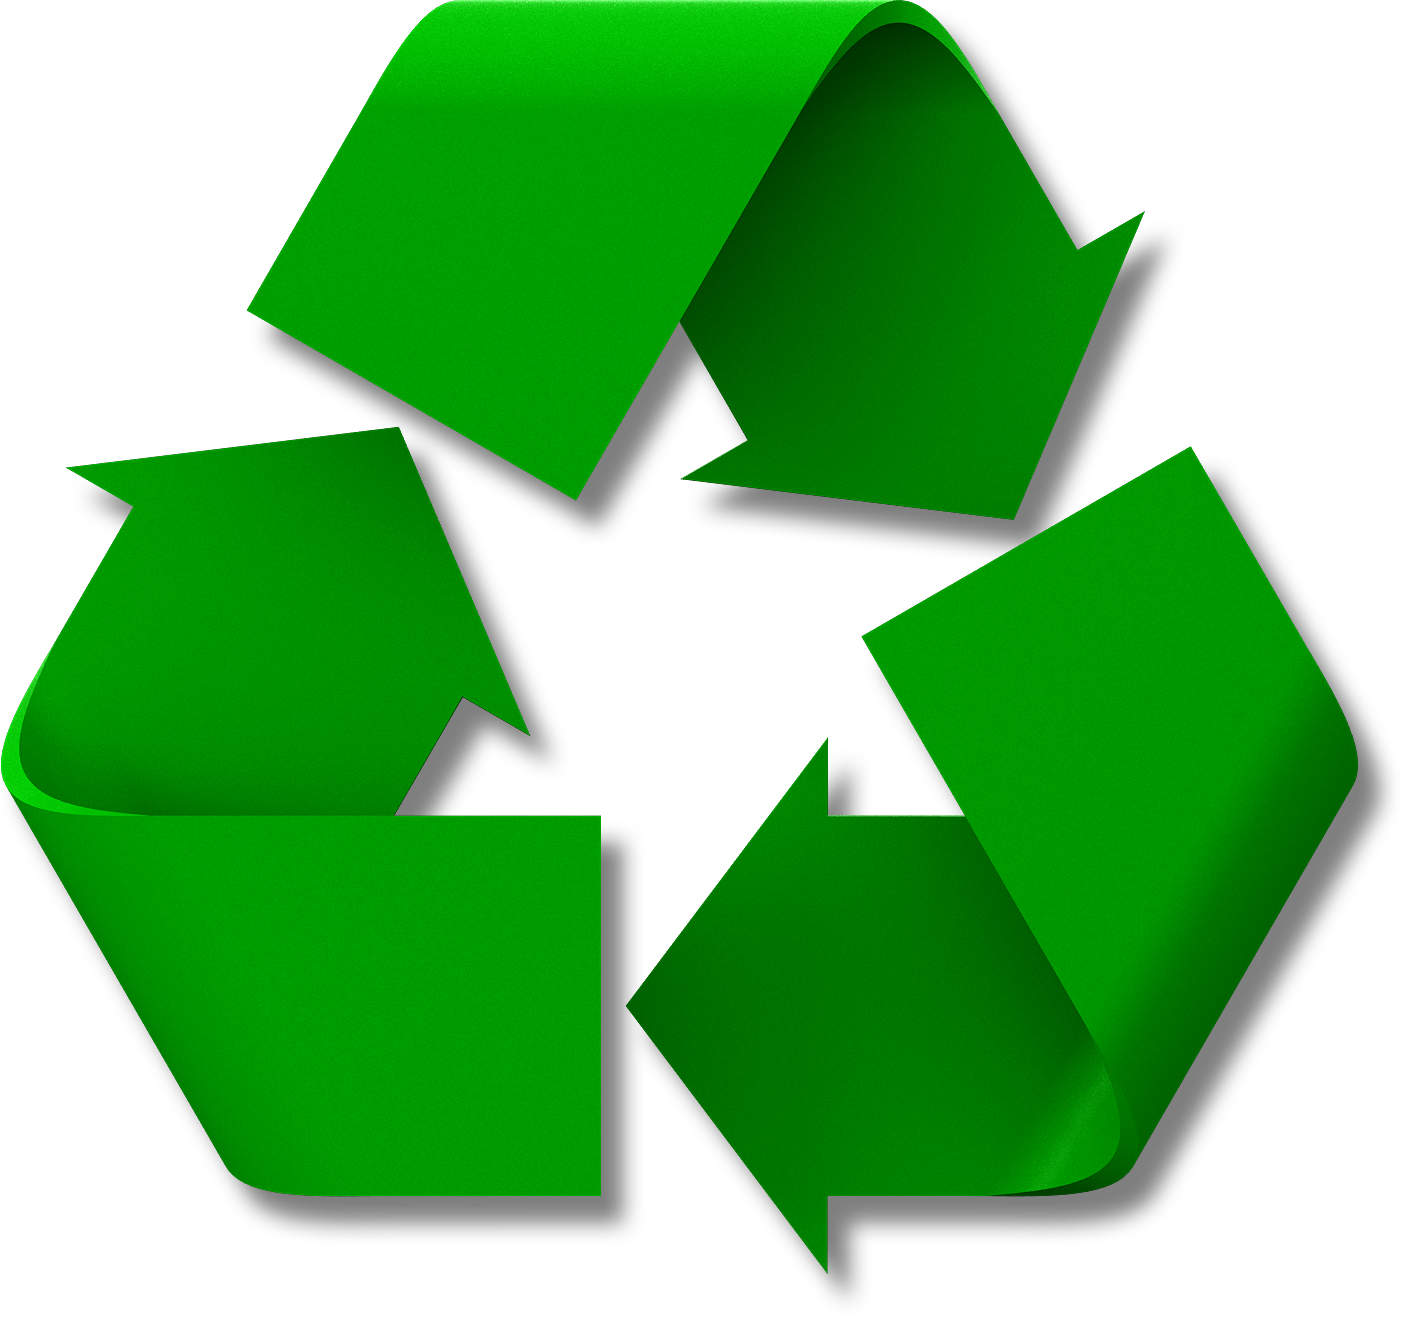 Recycling Arrow Image